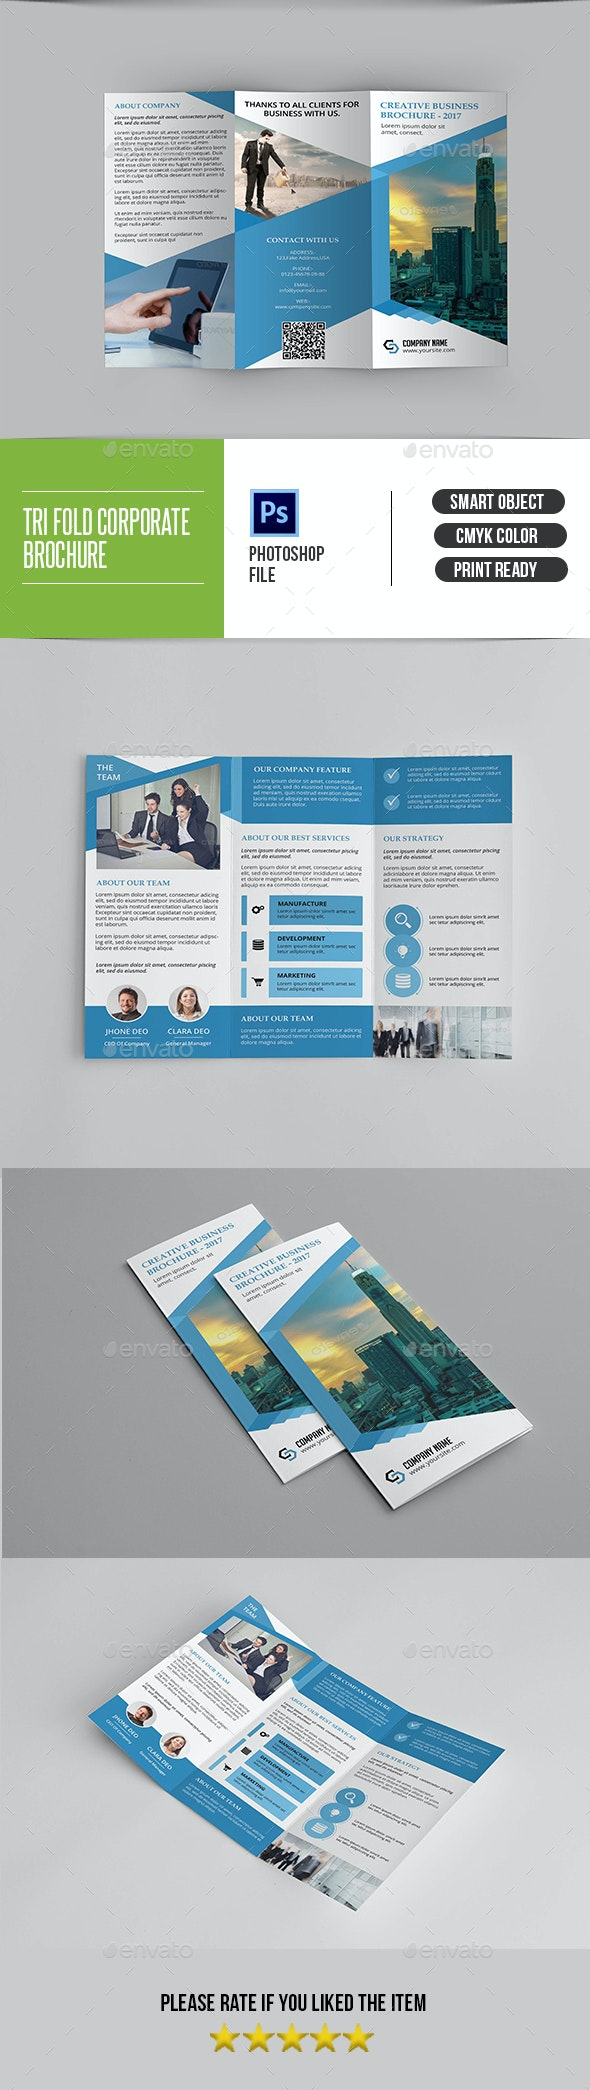 Corporate Trifold Brochure-V297 - Corporate Brochures